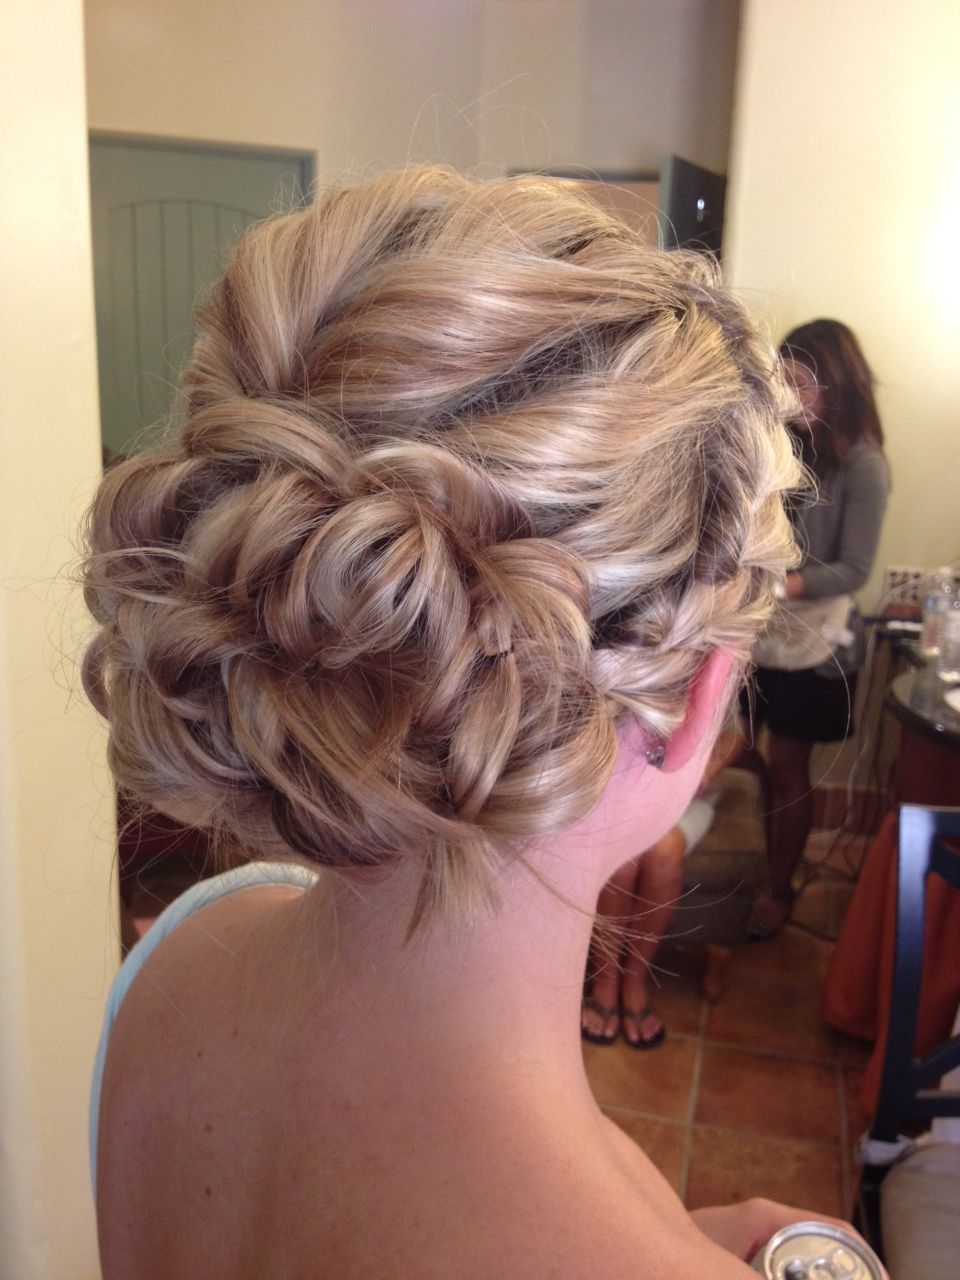 Braided romantic updo for a bridesmaid I did, best yet